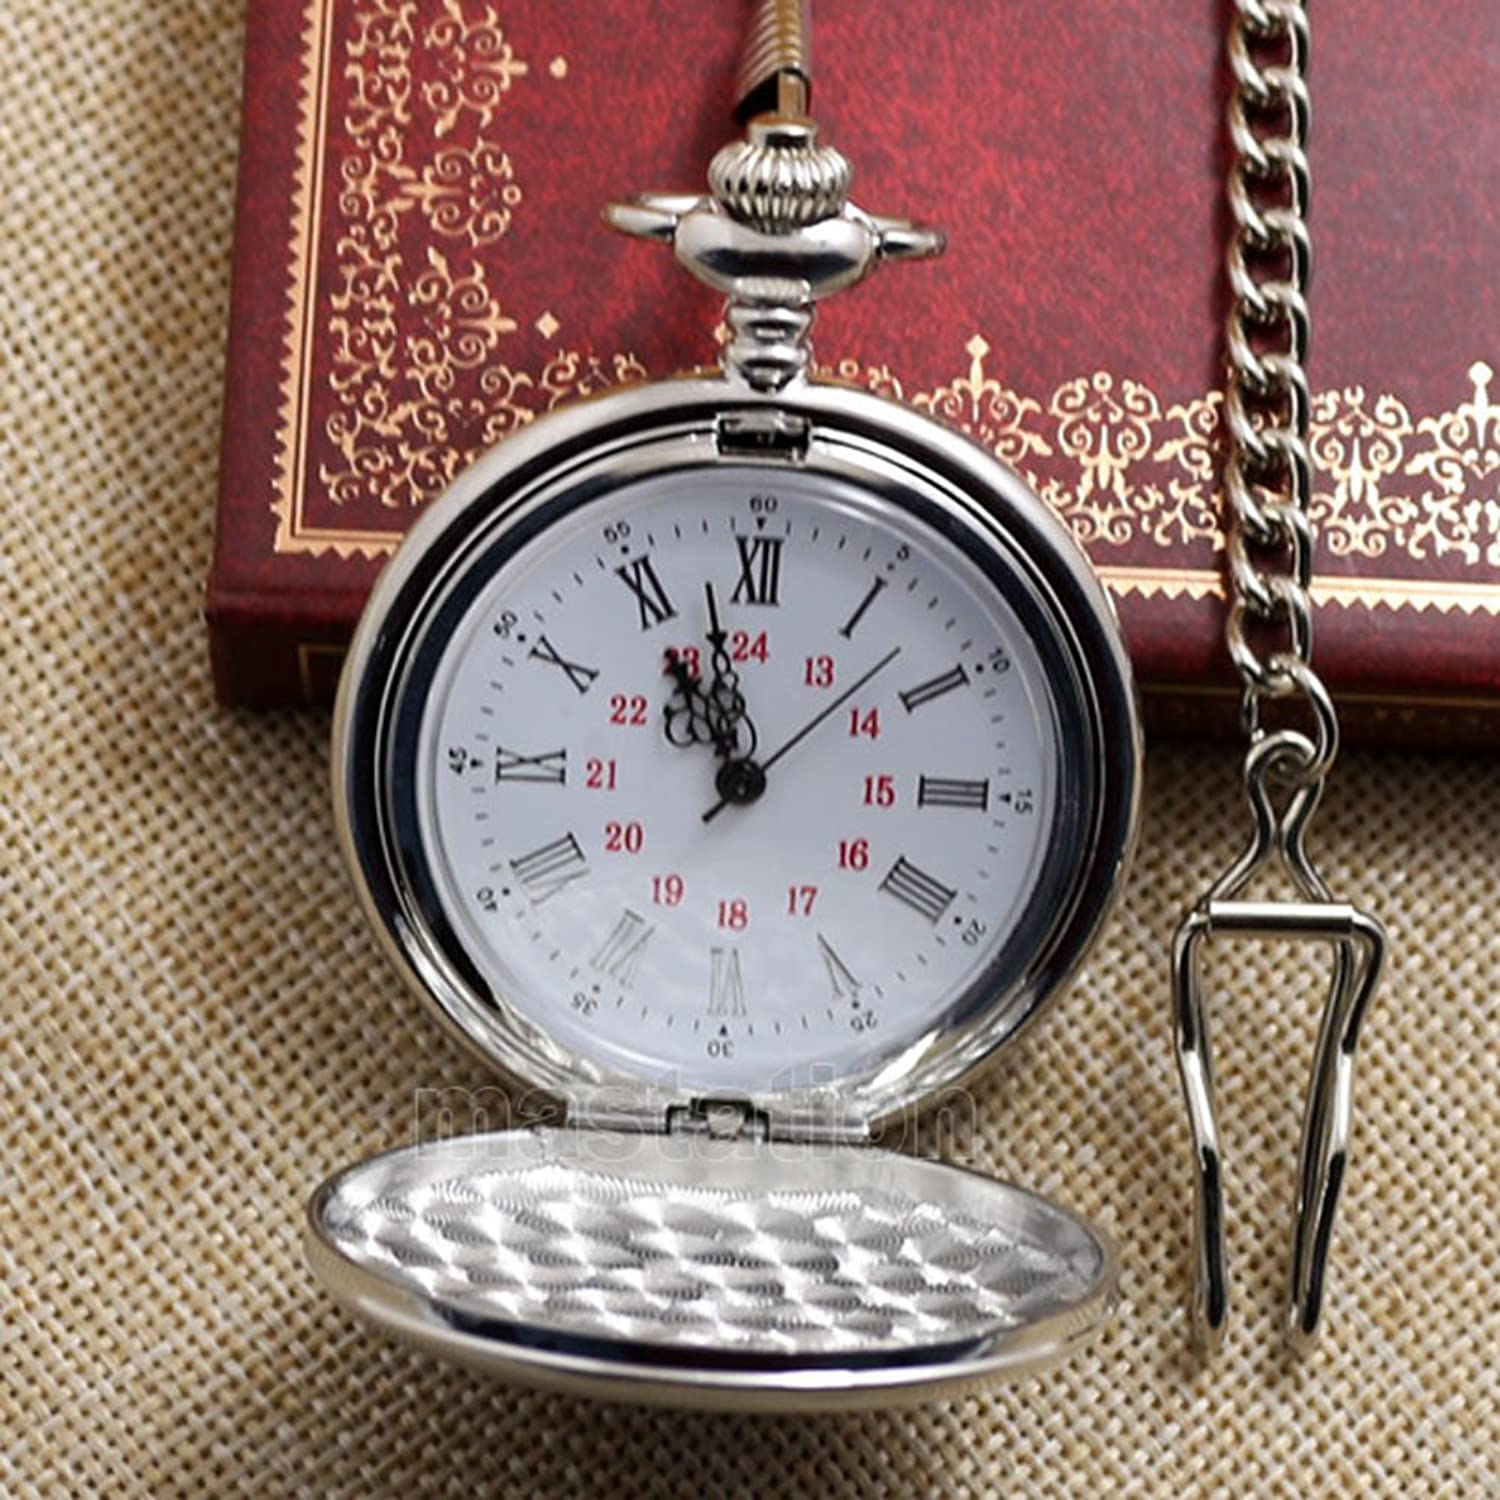 Edwardian Men's Fashion & Clothing WIOR Classic Smooth Vintage Pocket Watch Sliver Steel Men Watch with 14'' Chain for Xmas Fathers Day Gift $9.99 AT vintagedancer.com